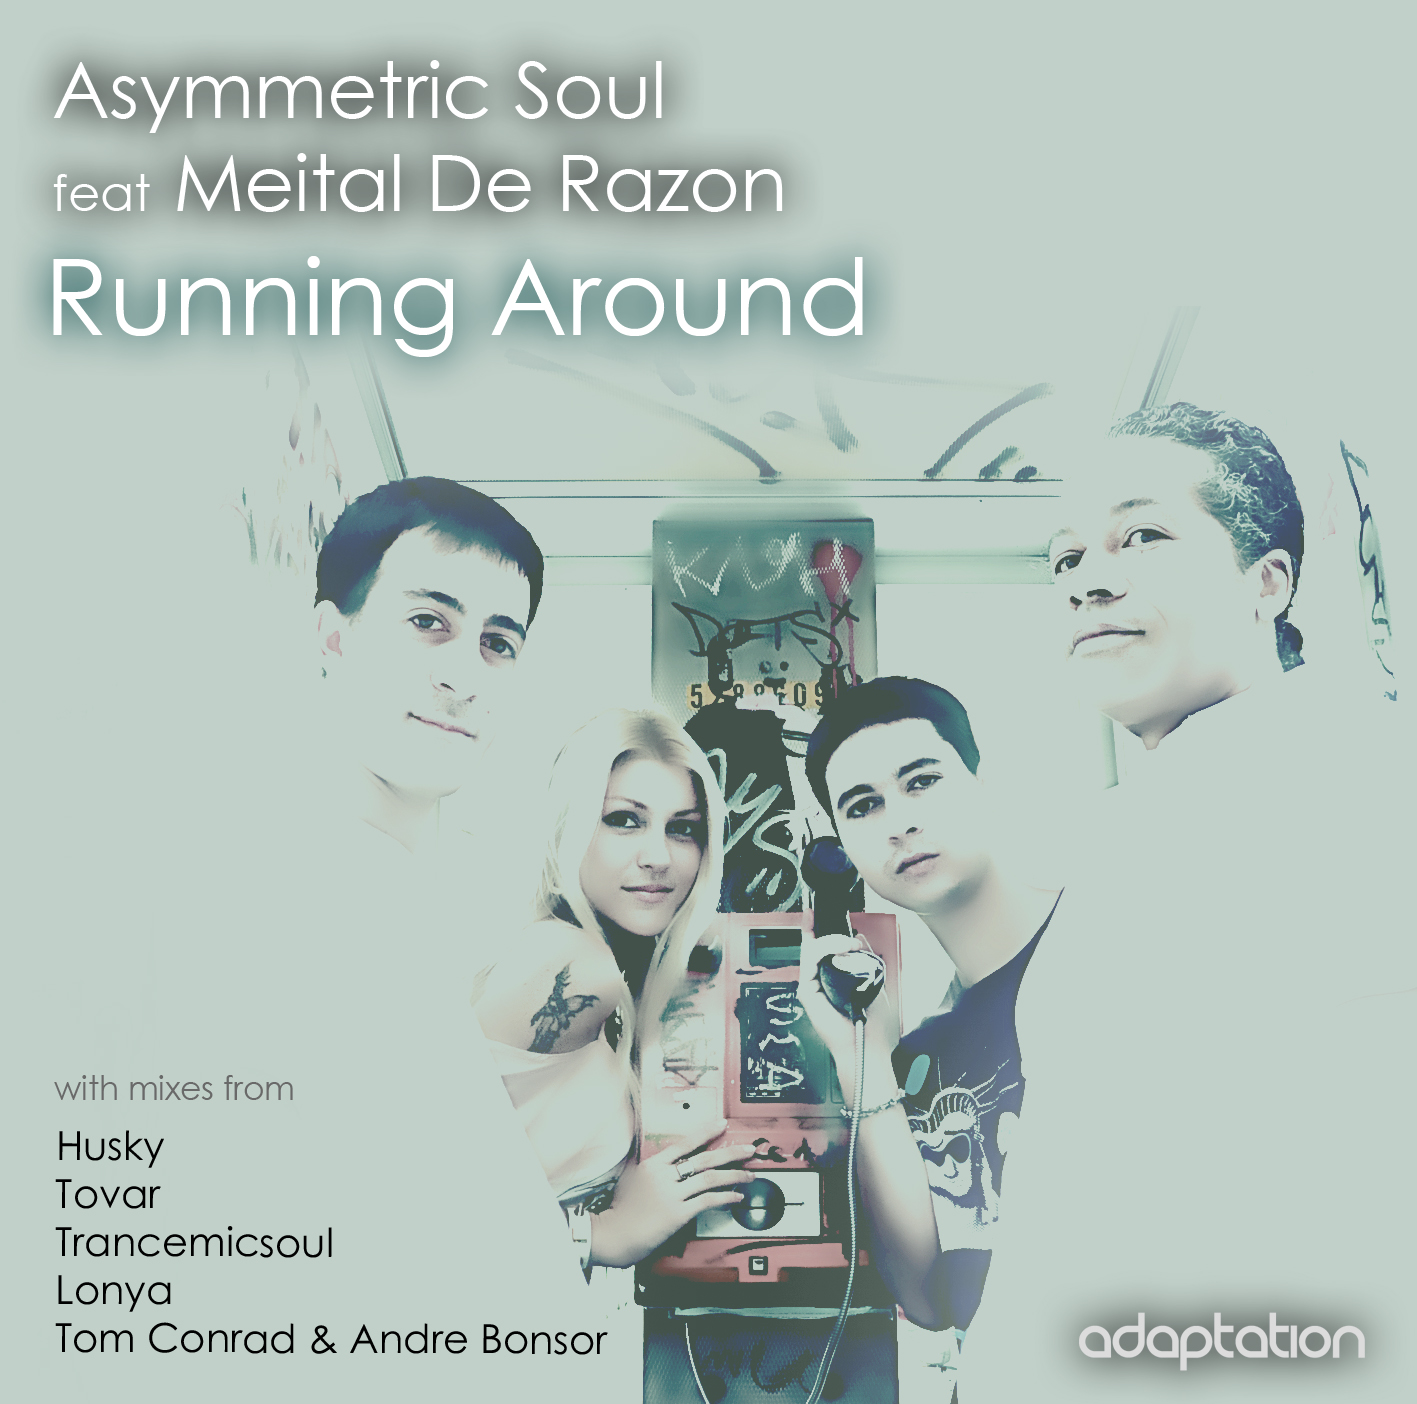 Asymmetric Soul – Running Around